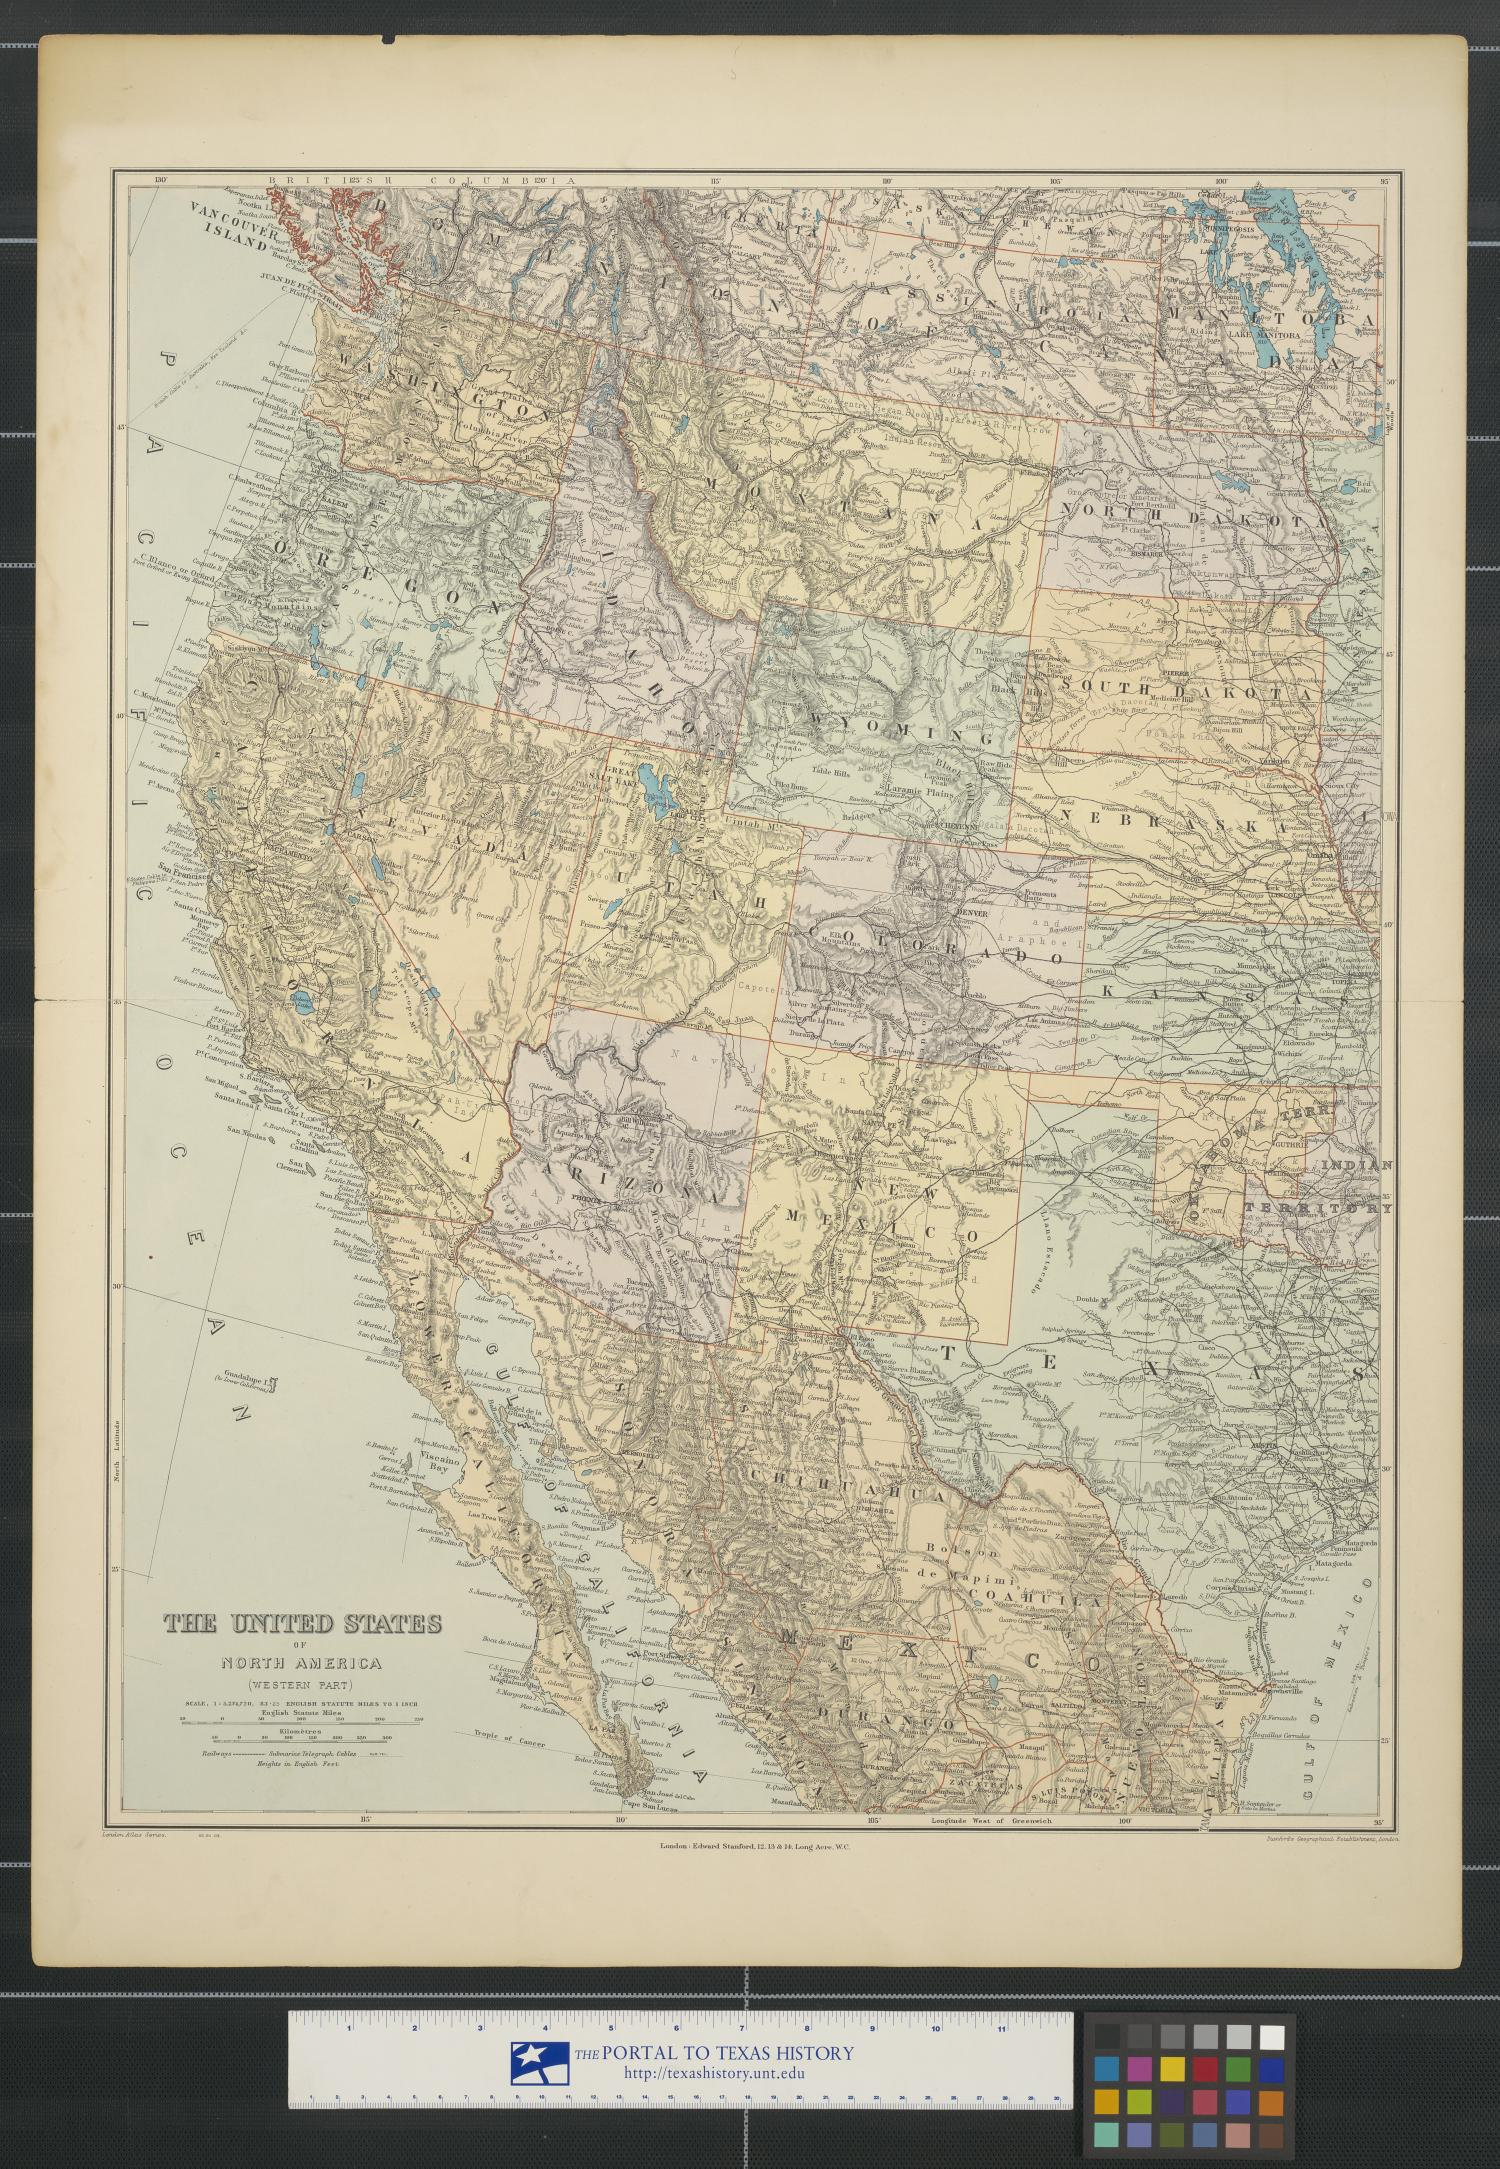 The United States of North America (western part).                                                                                                      [Sequence #]: 1 of 2